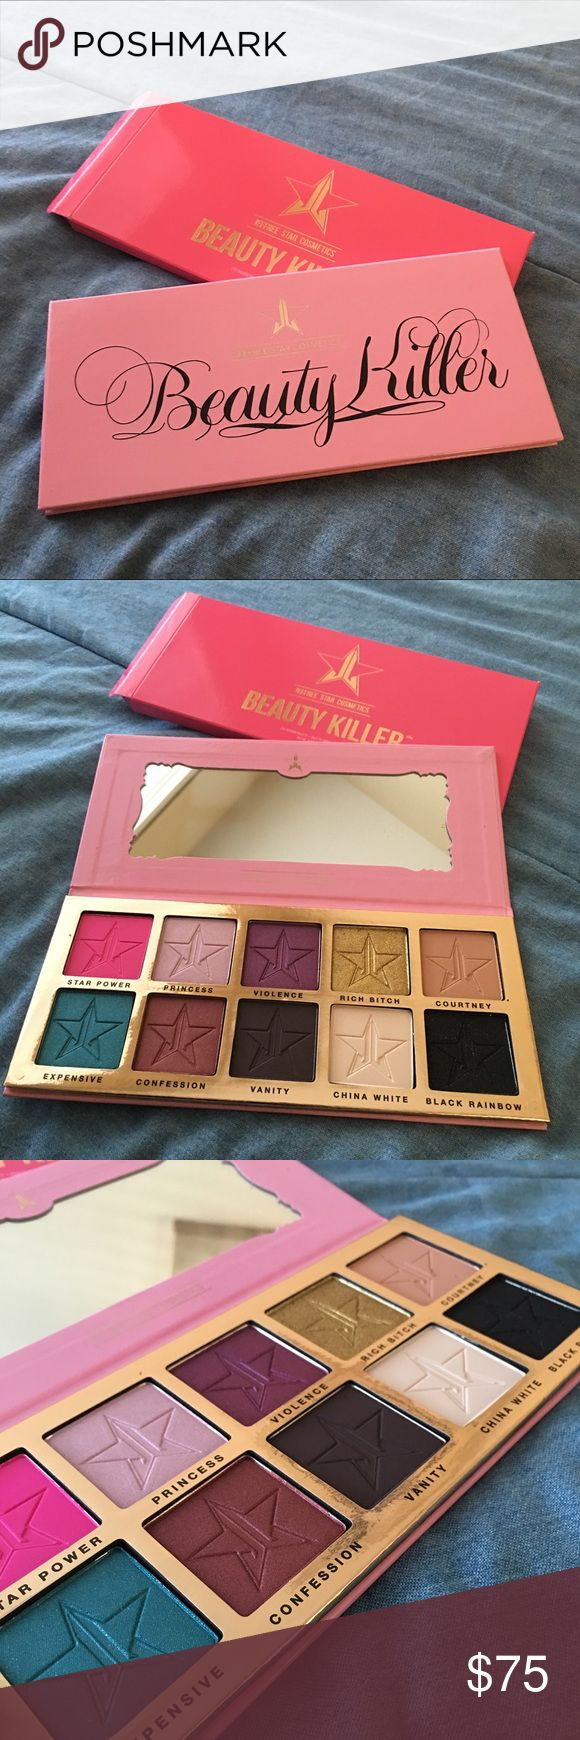 Jeffrey Star Cosmetics Beauty Killer Palette Selling Jeffree Star's new Beauty Killer palette. This is brand new and hasn't been touched just opened so I can show the colors. It comes with 10 beautiful shades, 7 mattes and 3 shimmers. Will ship in 1 - 3 days when purchased :) Jeffree Star Cosmetics Makeup Eyeshadow